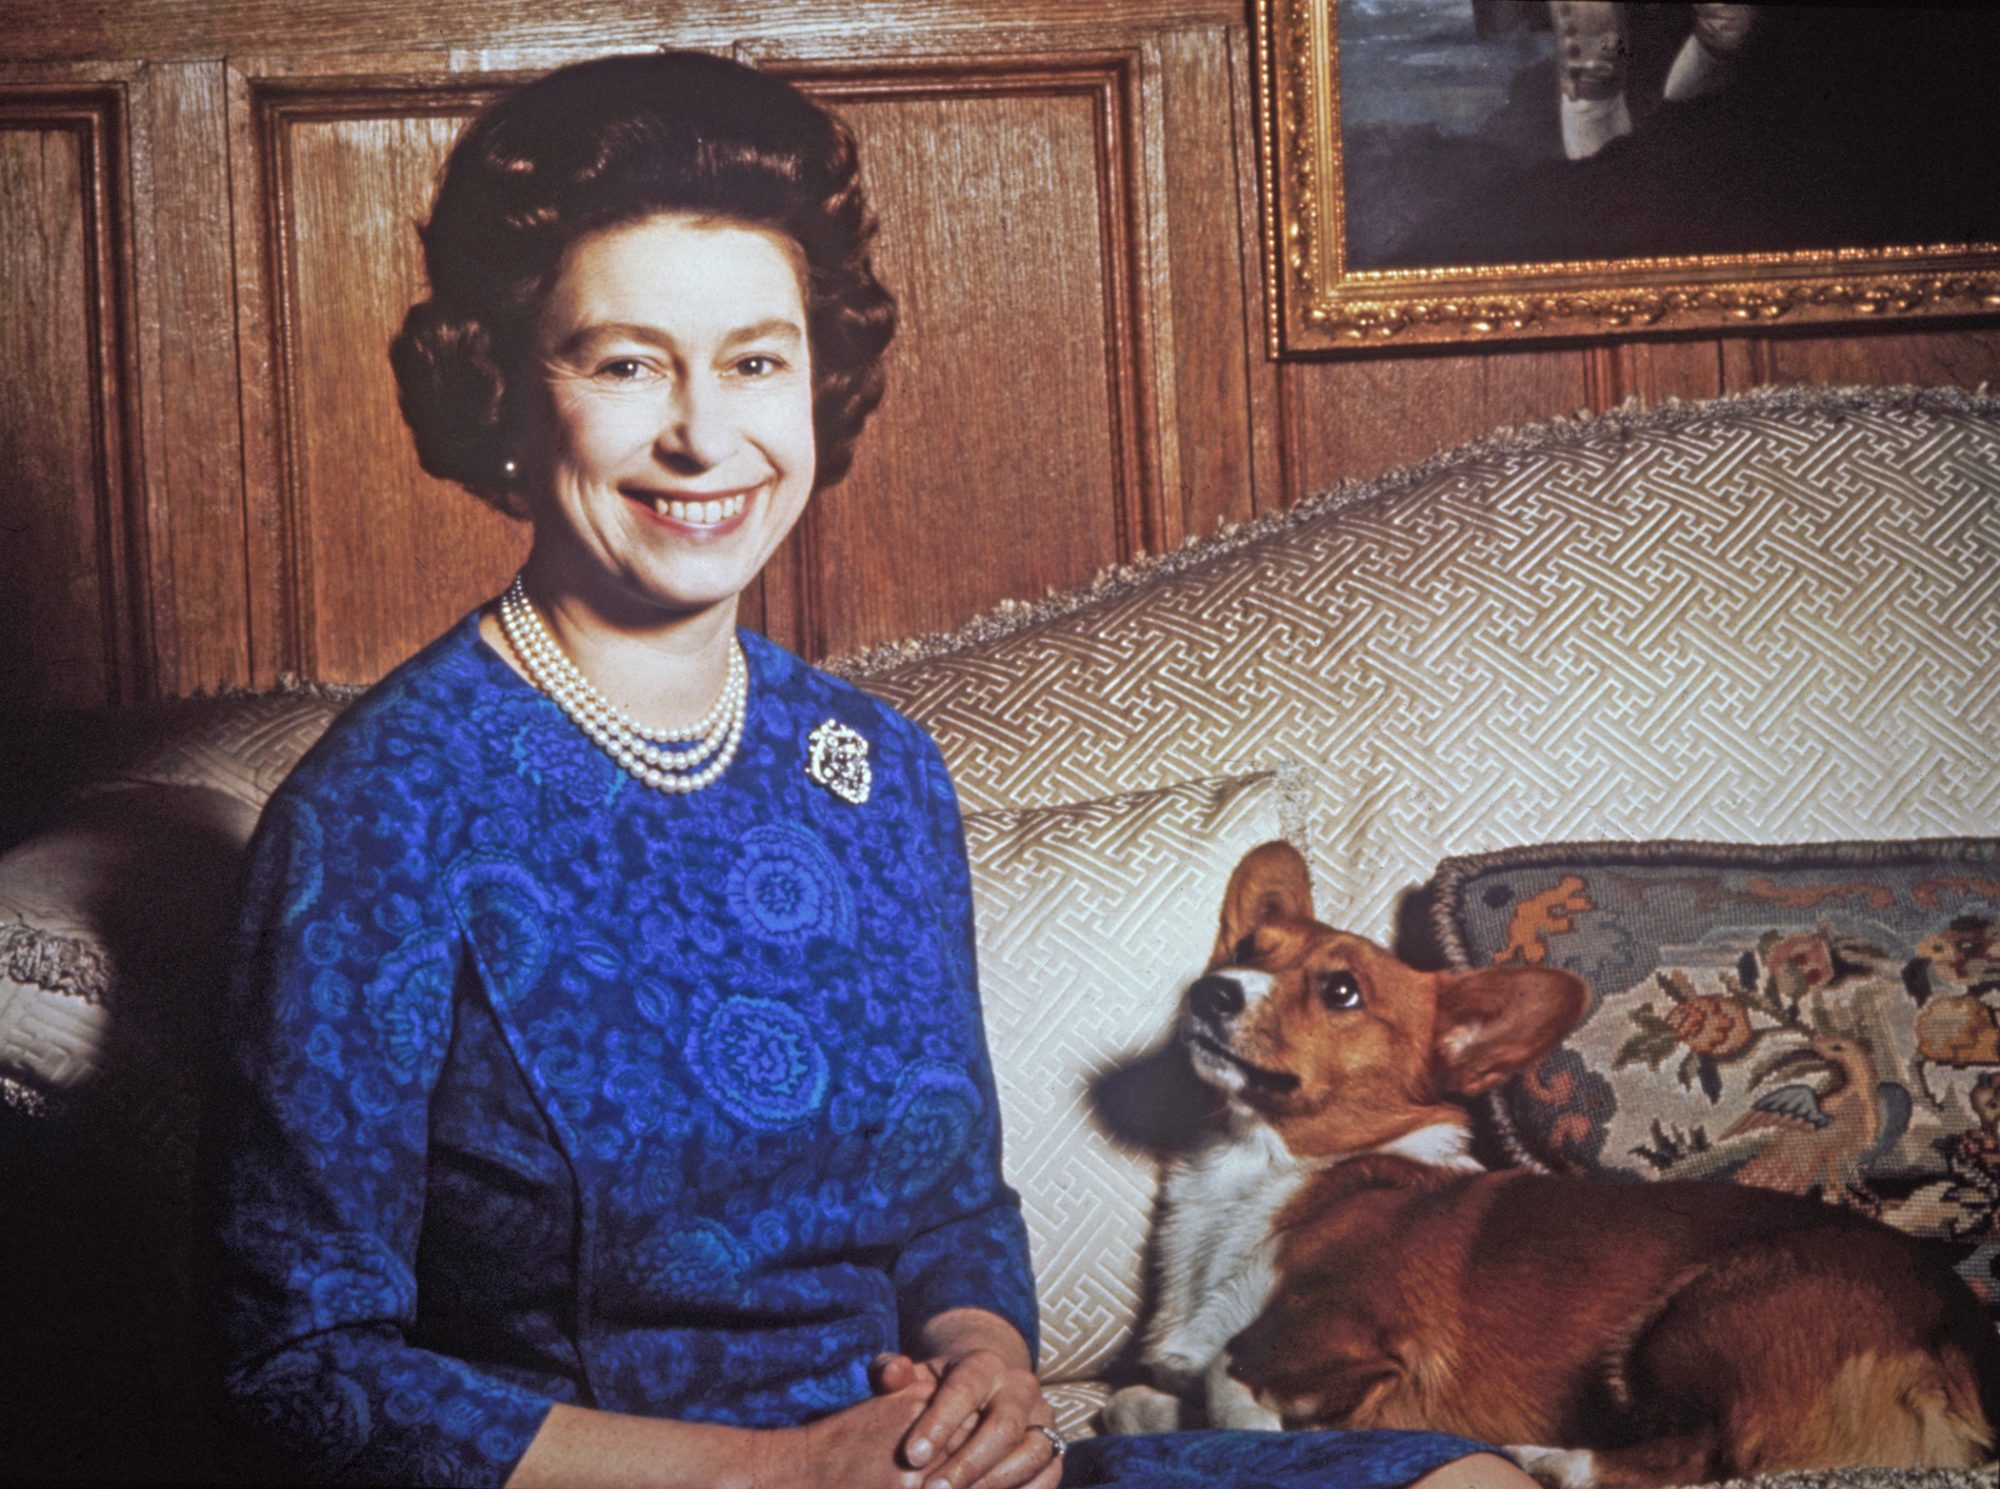 Color portrait of Queen Elizabeth and corgi on couch